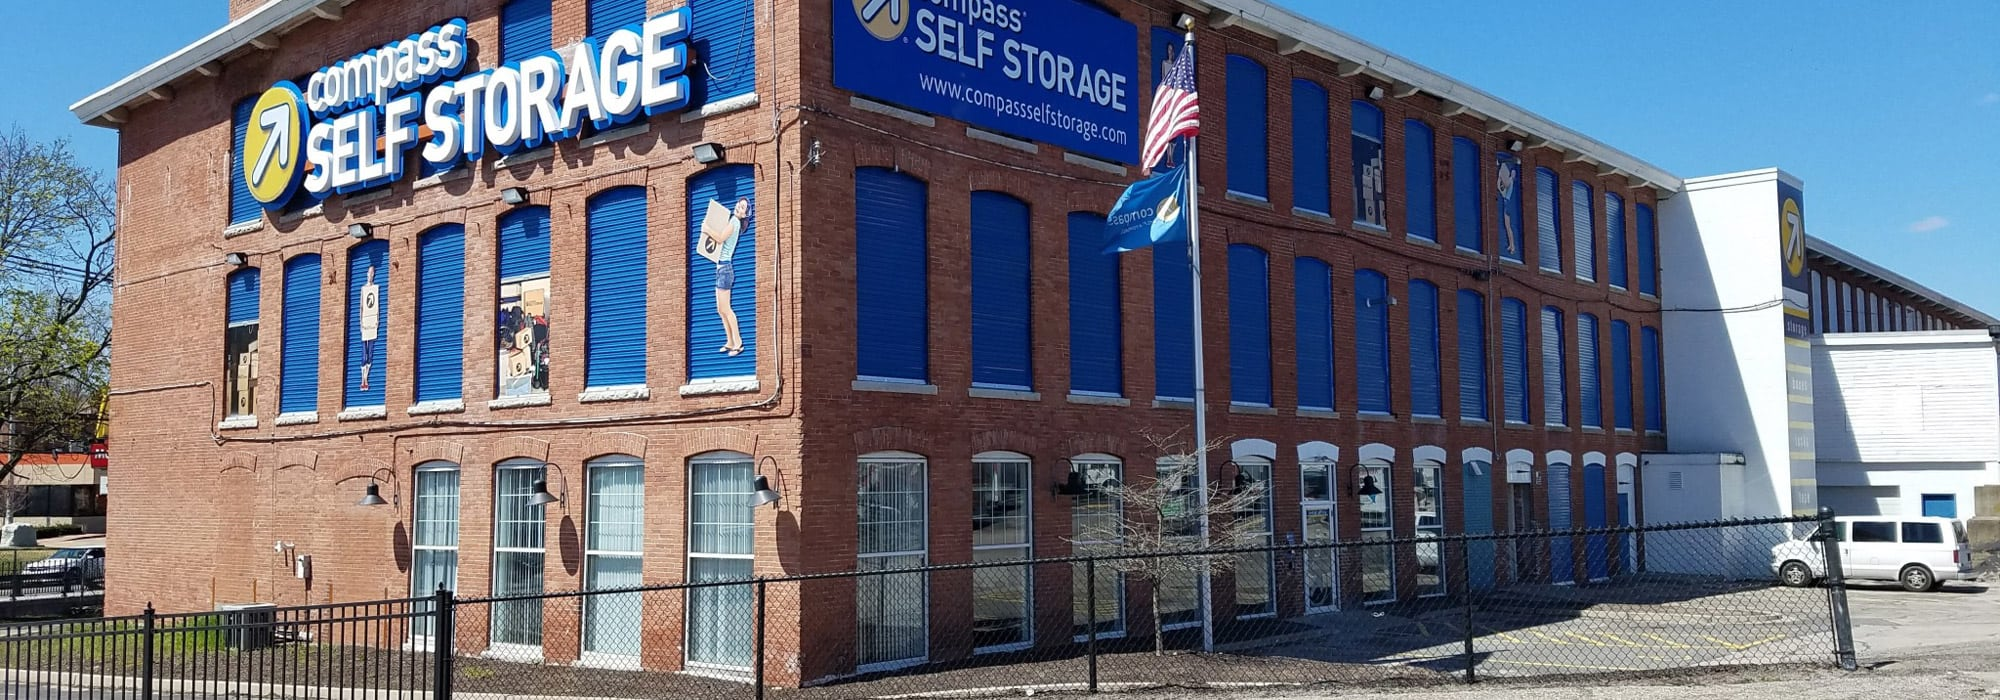 Self storage in Providence RI